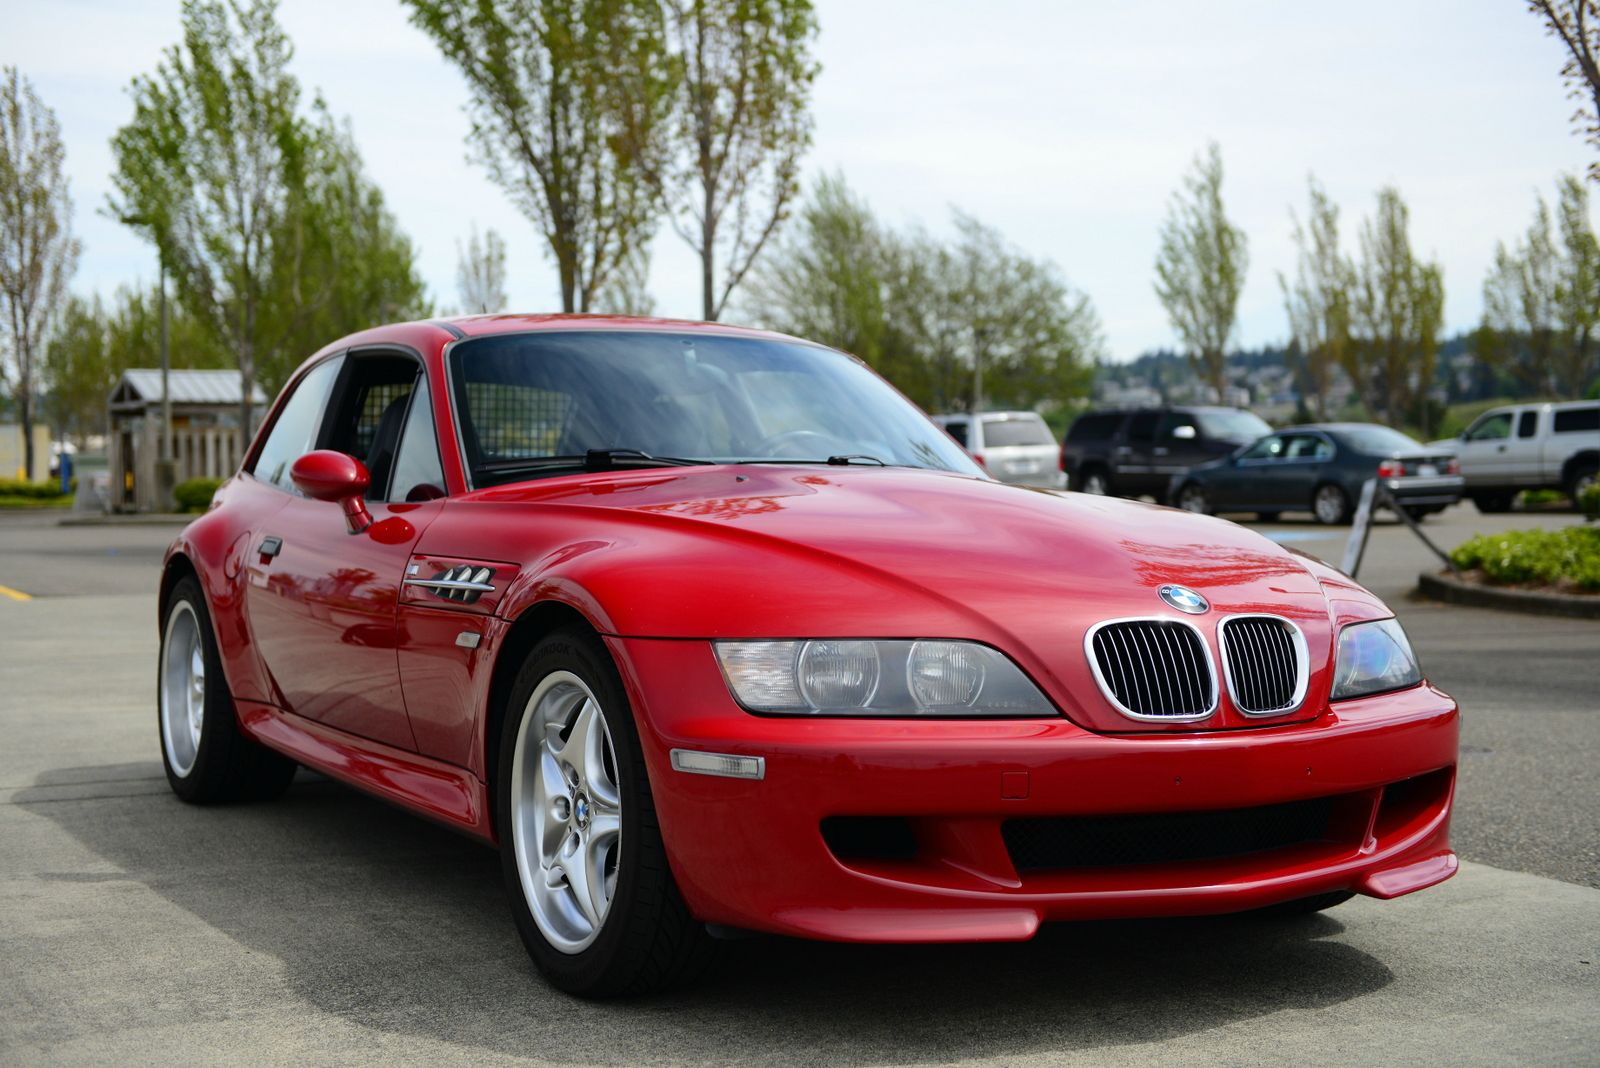 bmw z3 coupe 2000 images #12